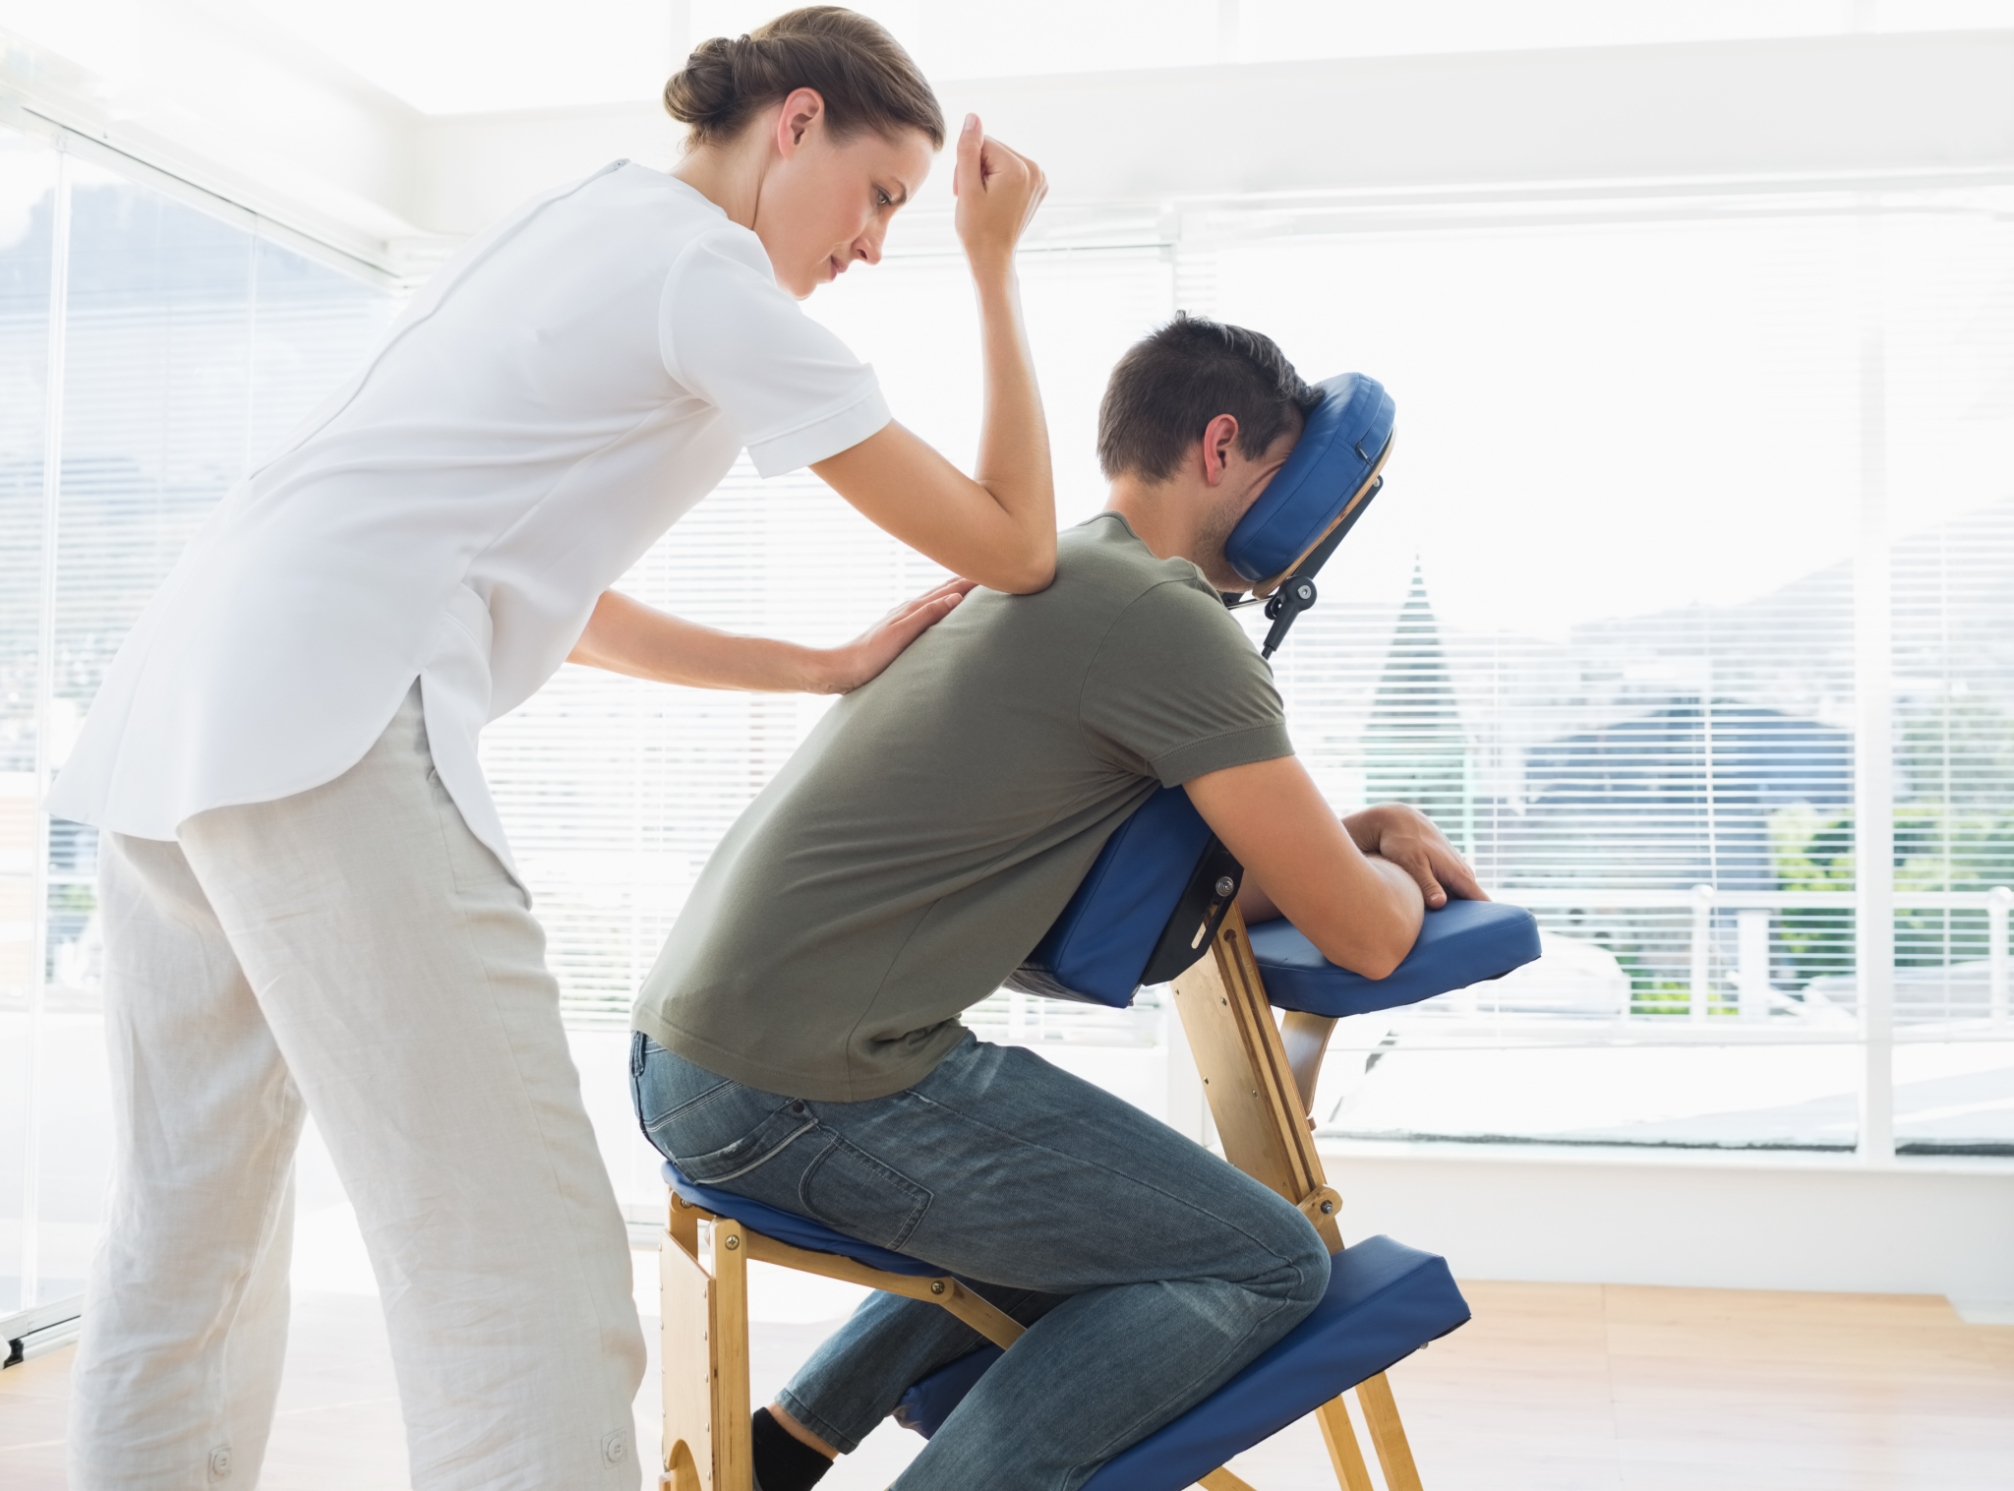 Massage Therapist Chair From Chair To Table Convert Your Chair Massage Clients